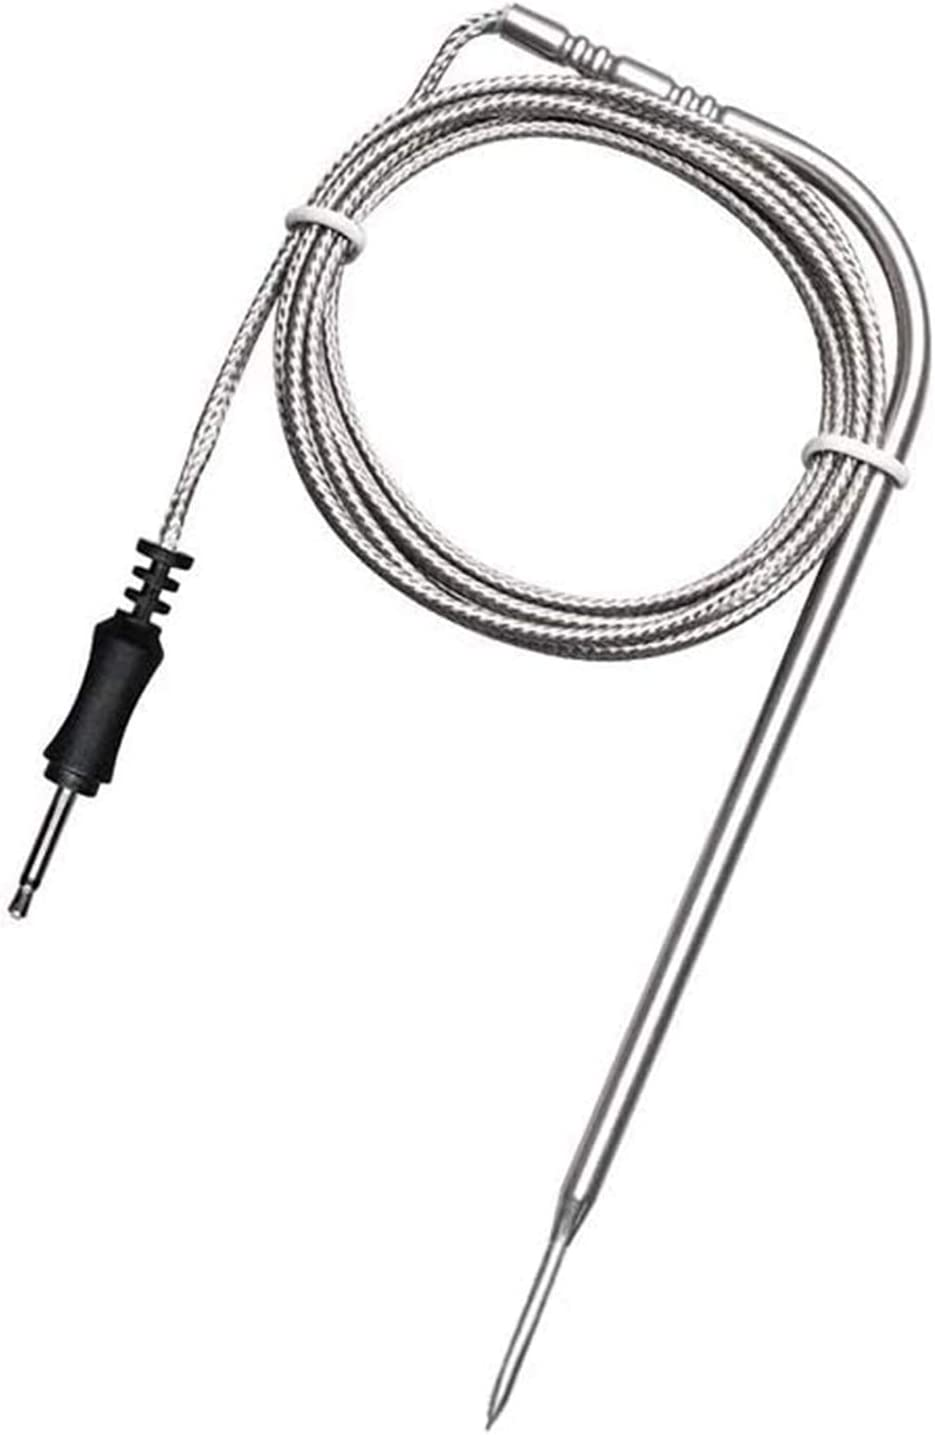 Inkbird Stailess Probe Replacement Ranking TOP15 for Digital Max 45% OFF IRF-4S W Wireless